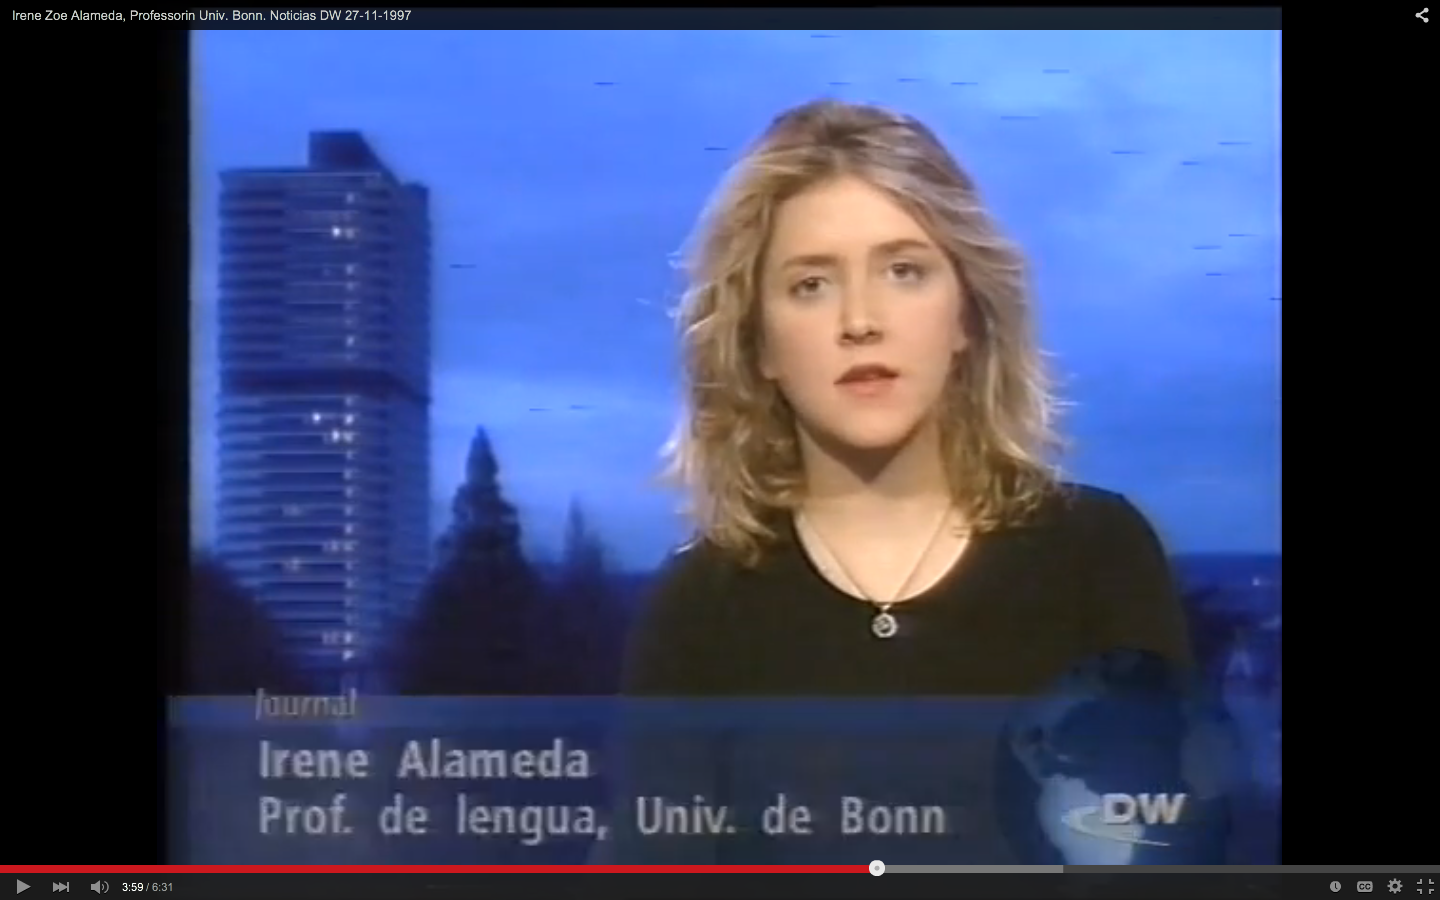 Irene Zoe Alameda, Professor at Bonn University. DW News 27-11-1997